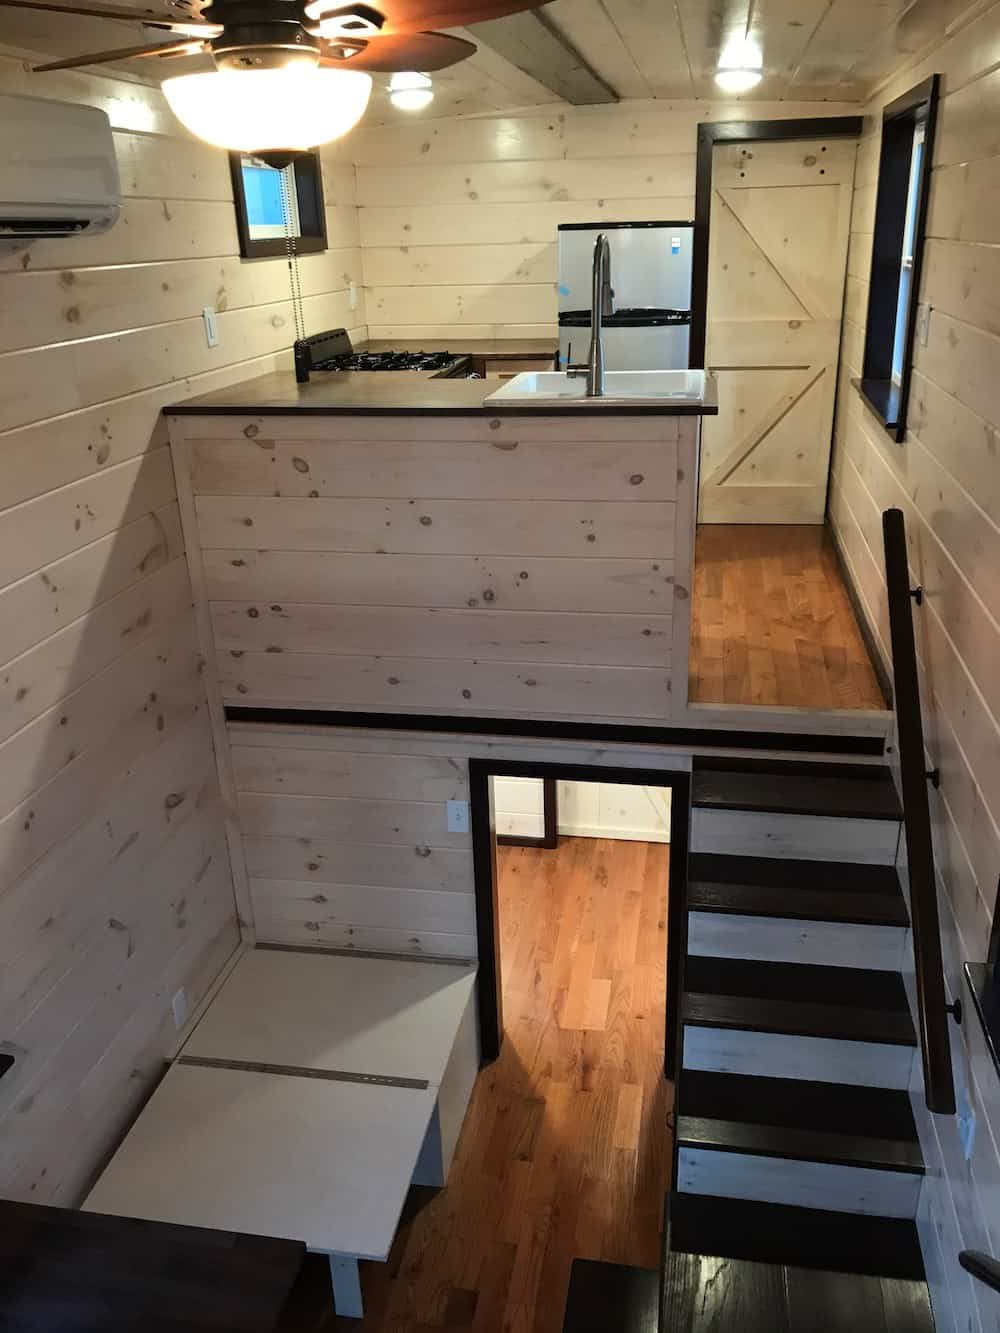 Tiny house with kitchen in loft